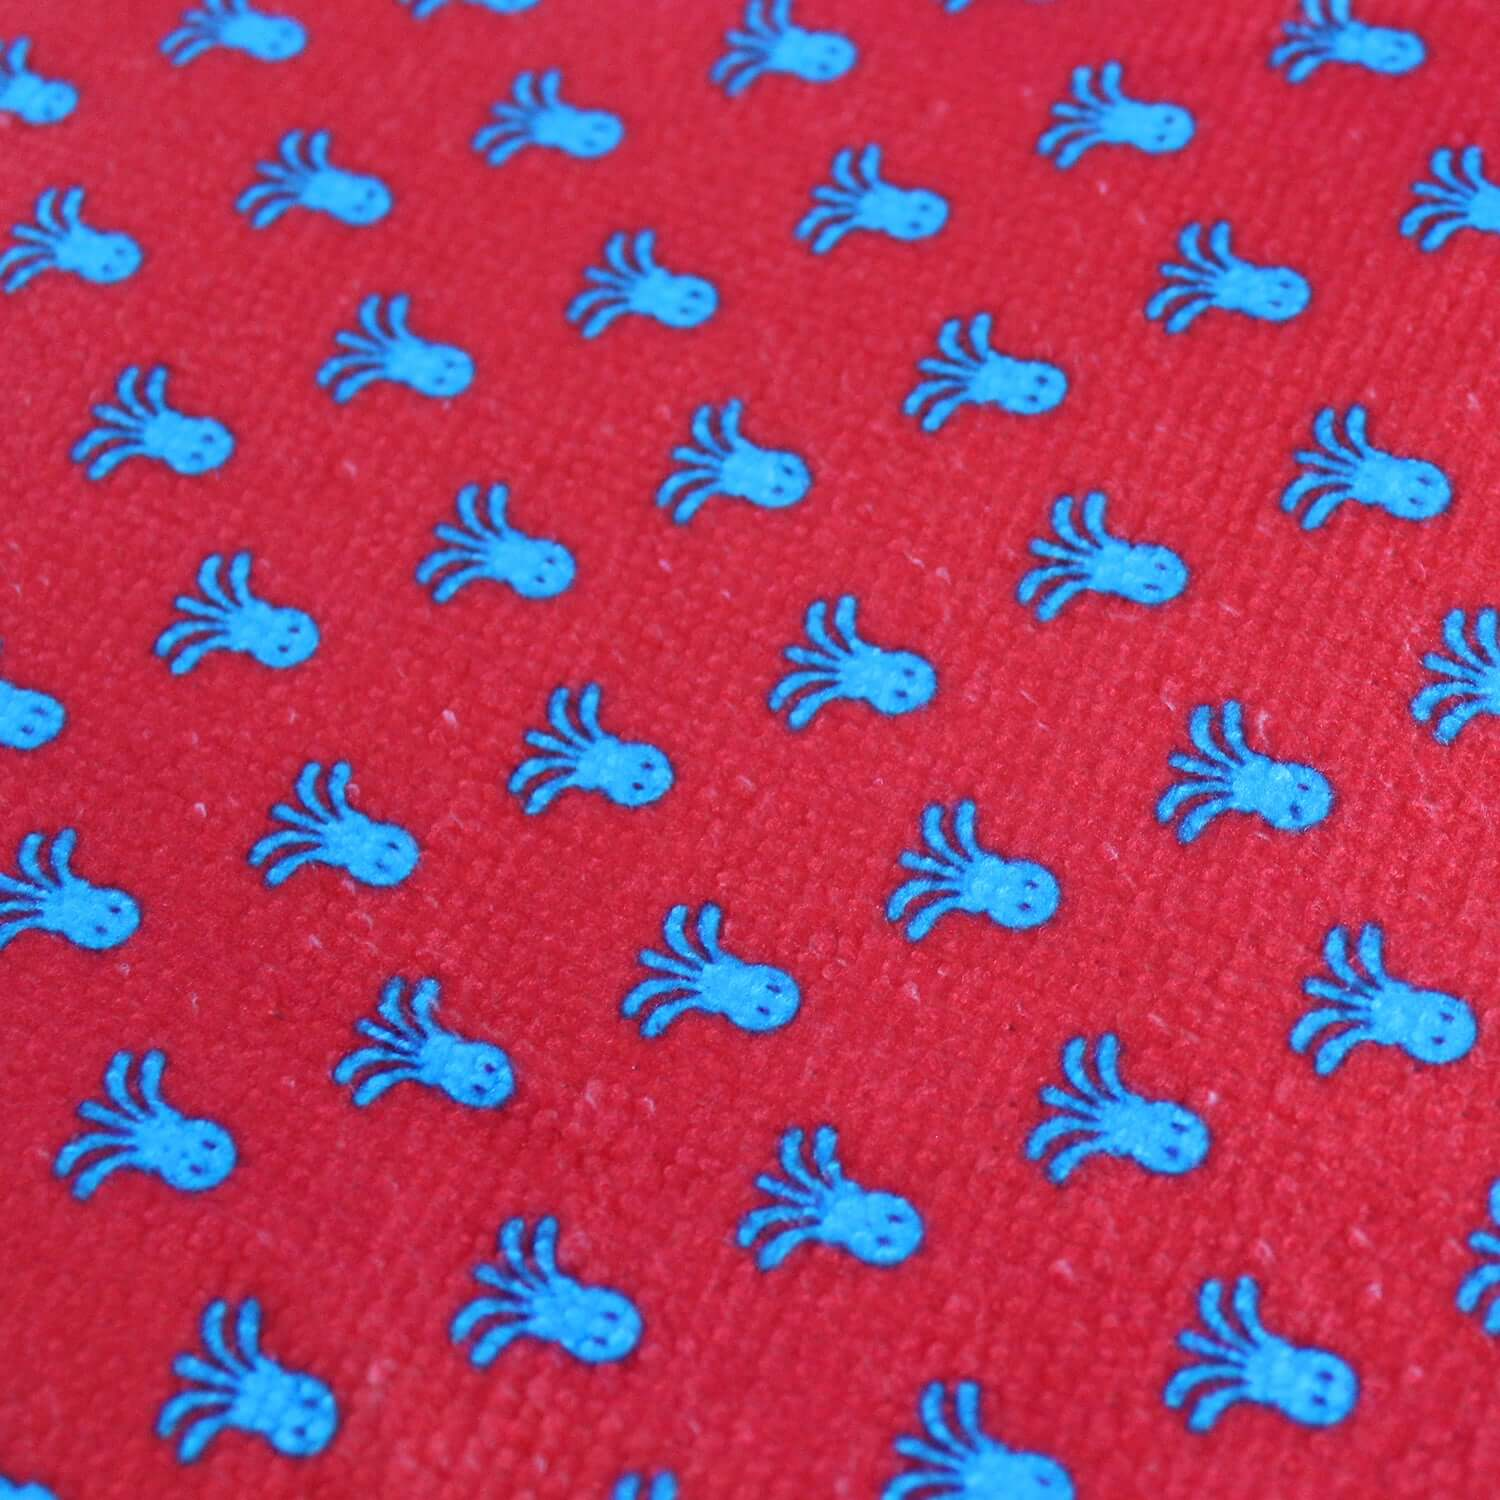 PRINTED OCTOPUS TOWEL - Clorofila Sea Wear